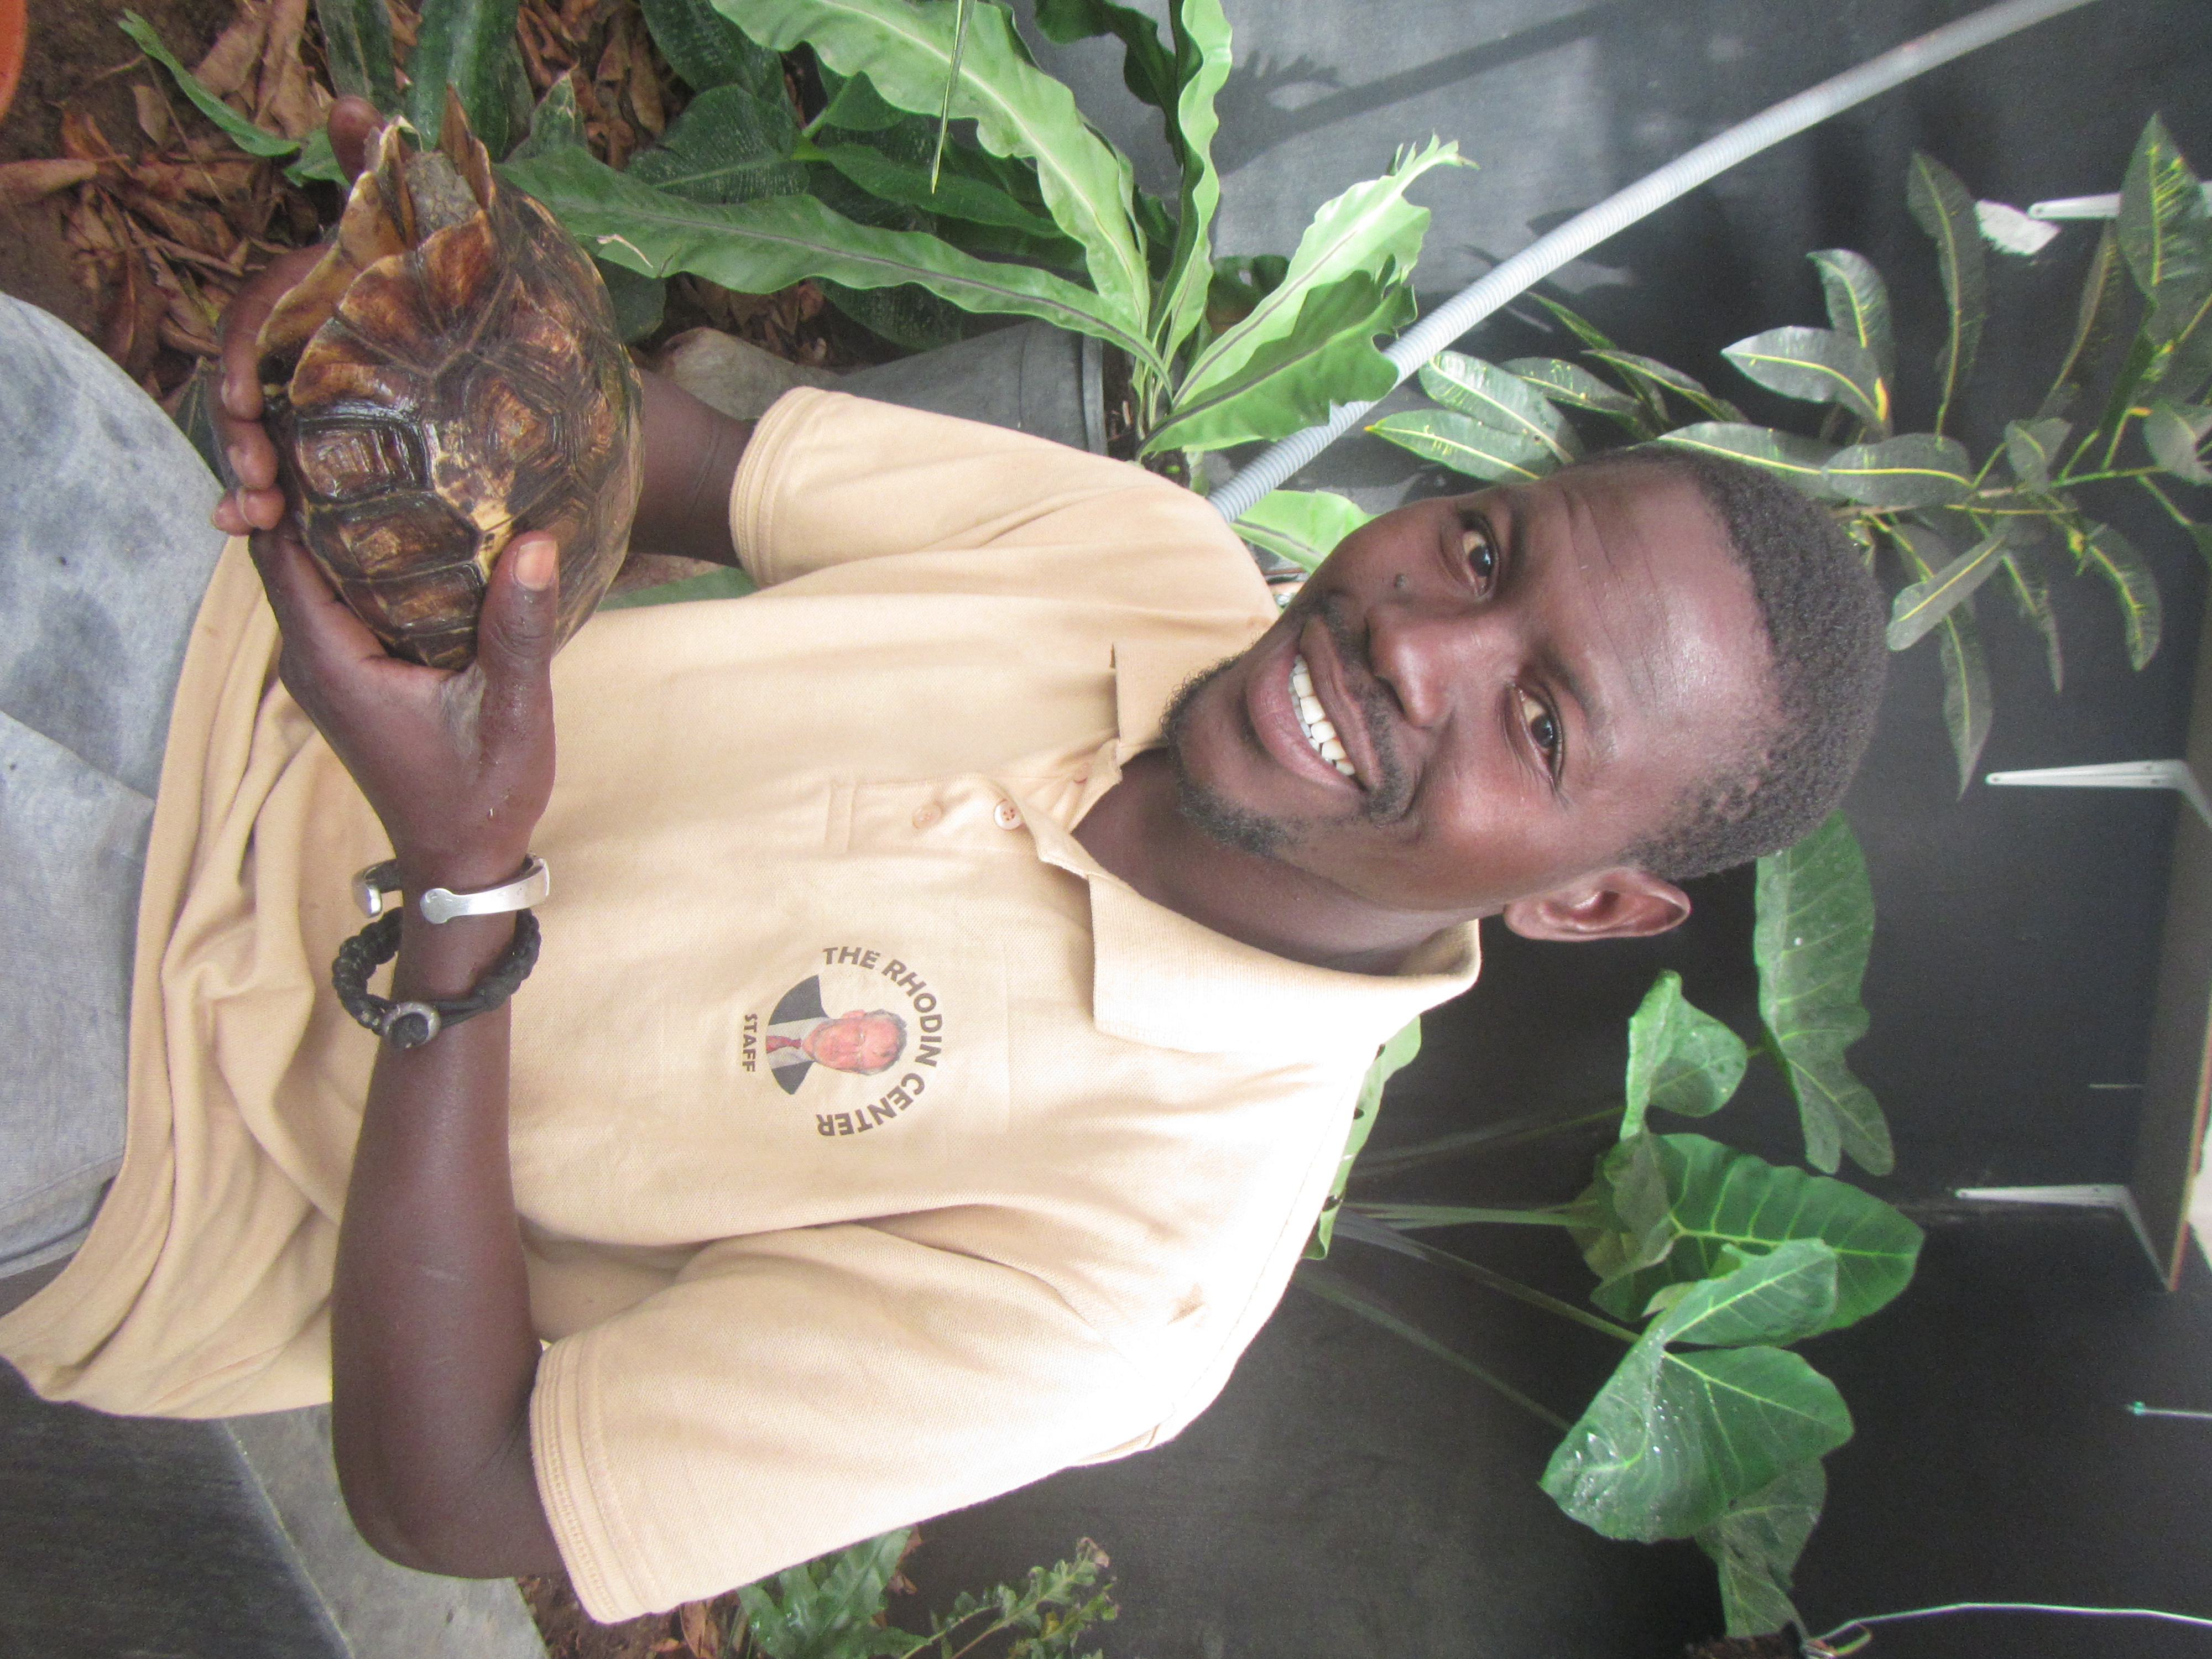 Marcel (Rhodin Center employee) holding a female of serrated hingeback tortoise at the Rhodin Center greenhouse